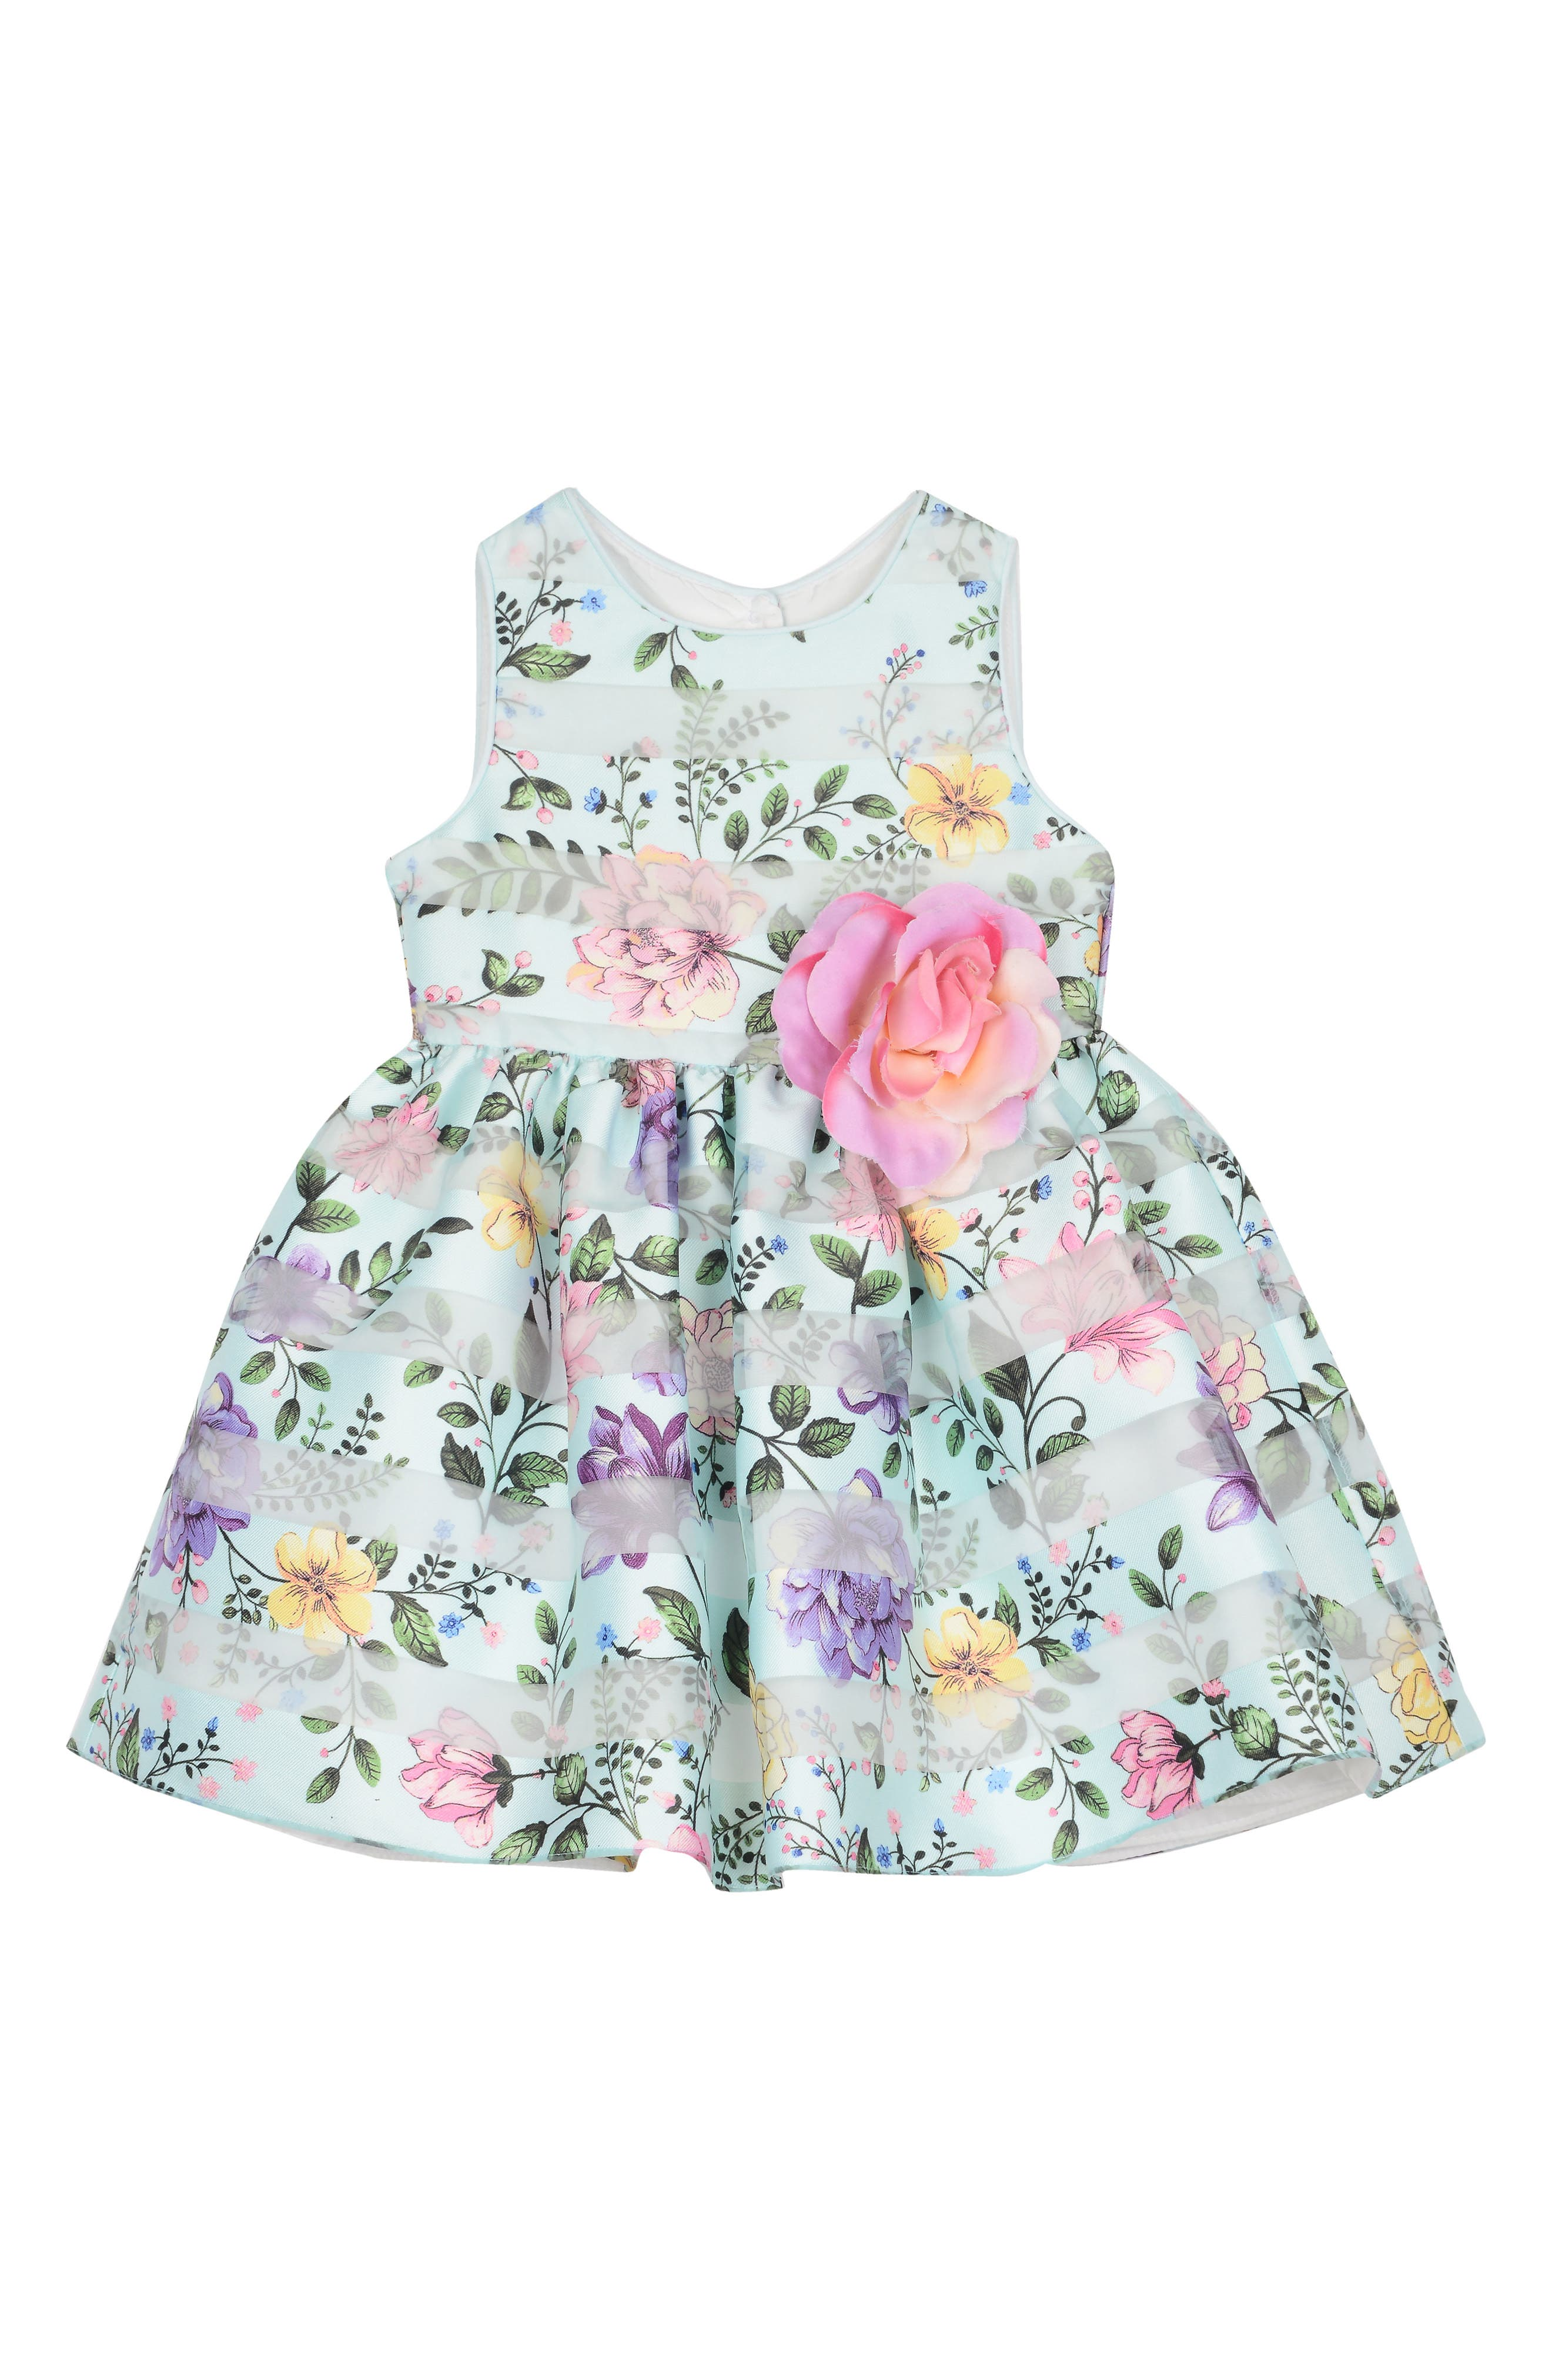 Pippa & Julie Shadow Stripe Floral Fit & Flare Dress (Toddler Girls, Little Girls & Big Girls)